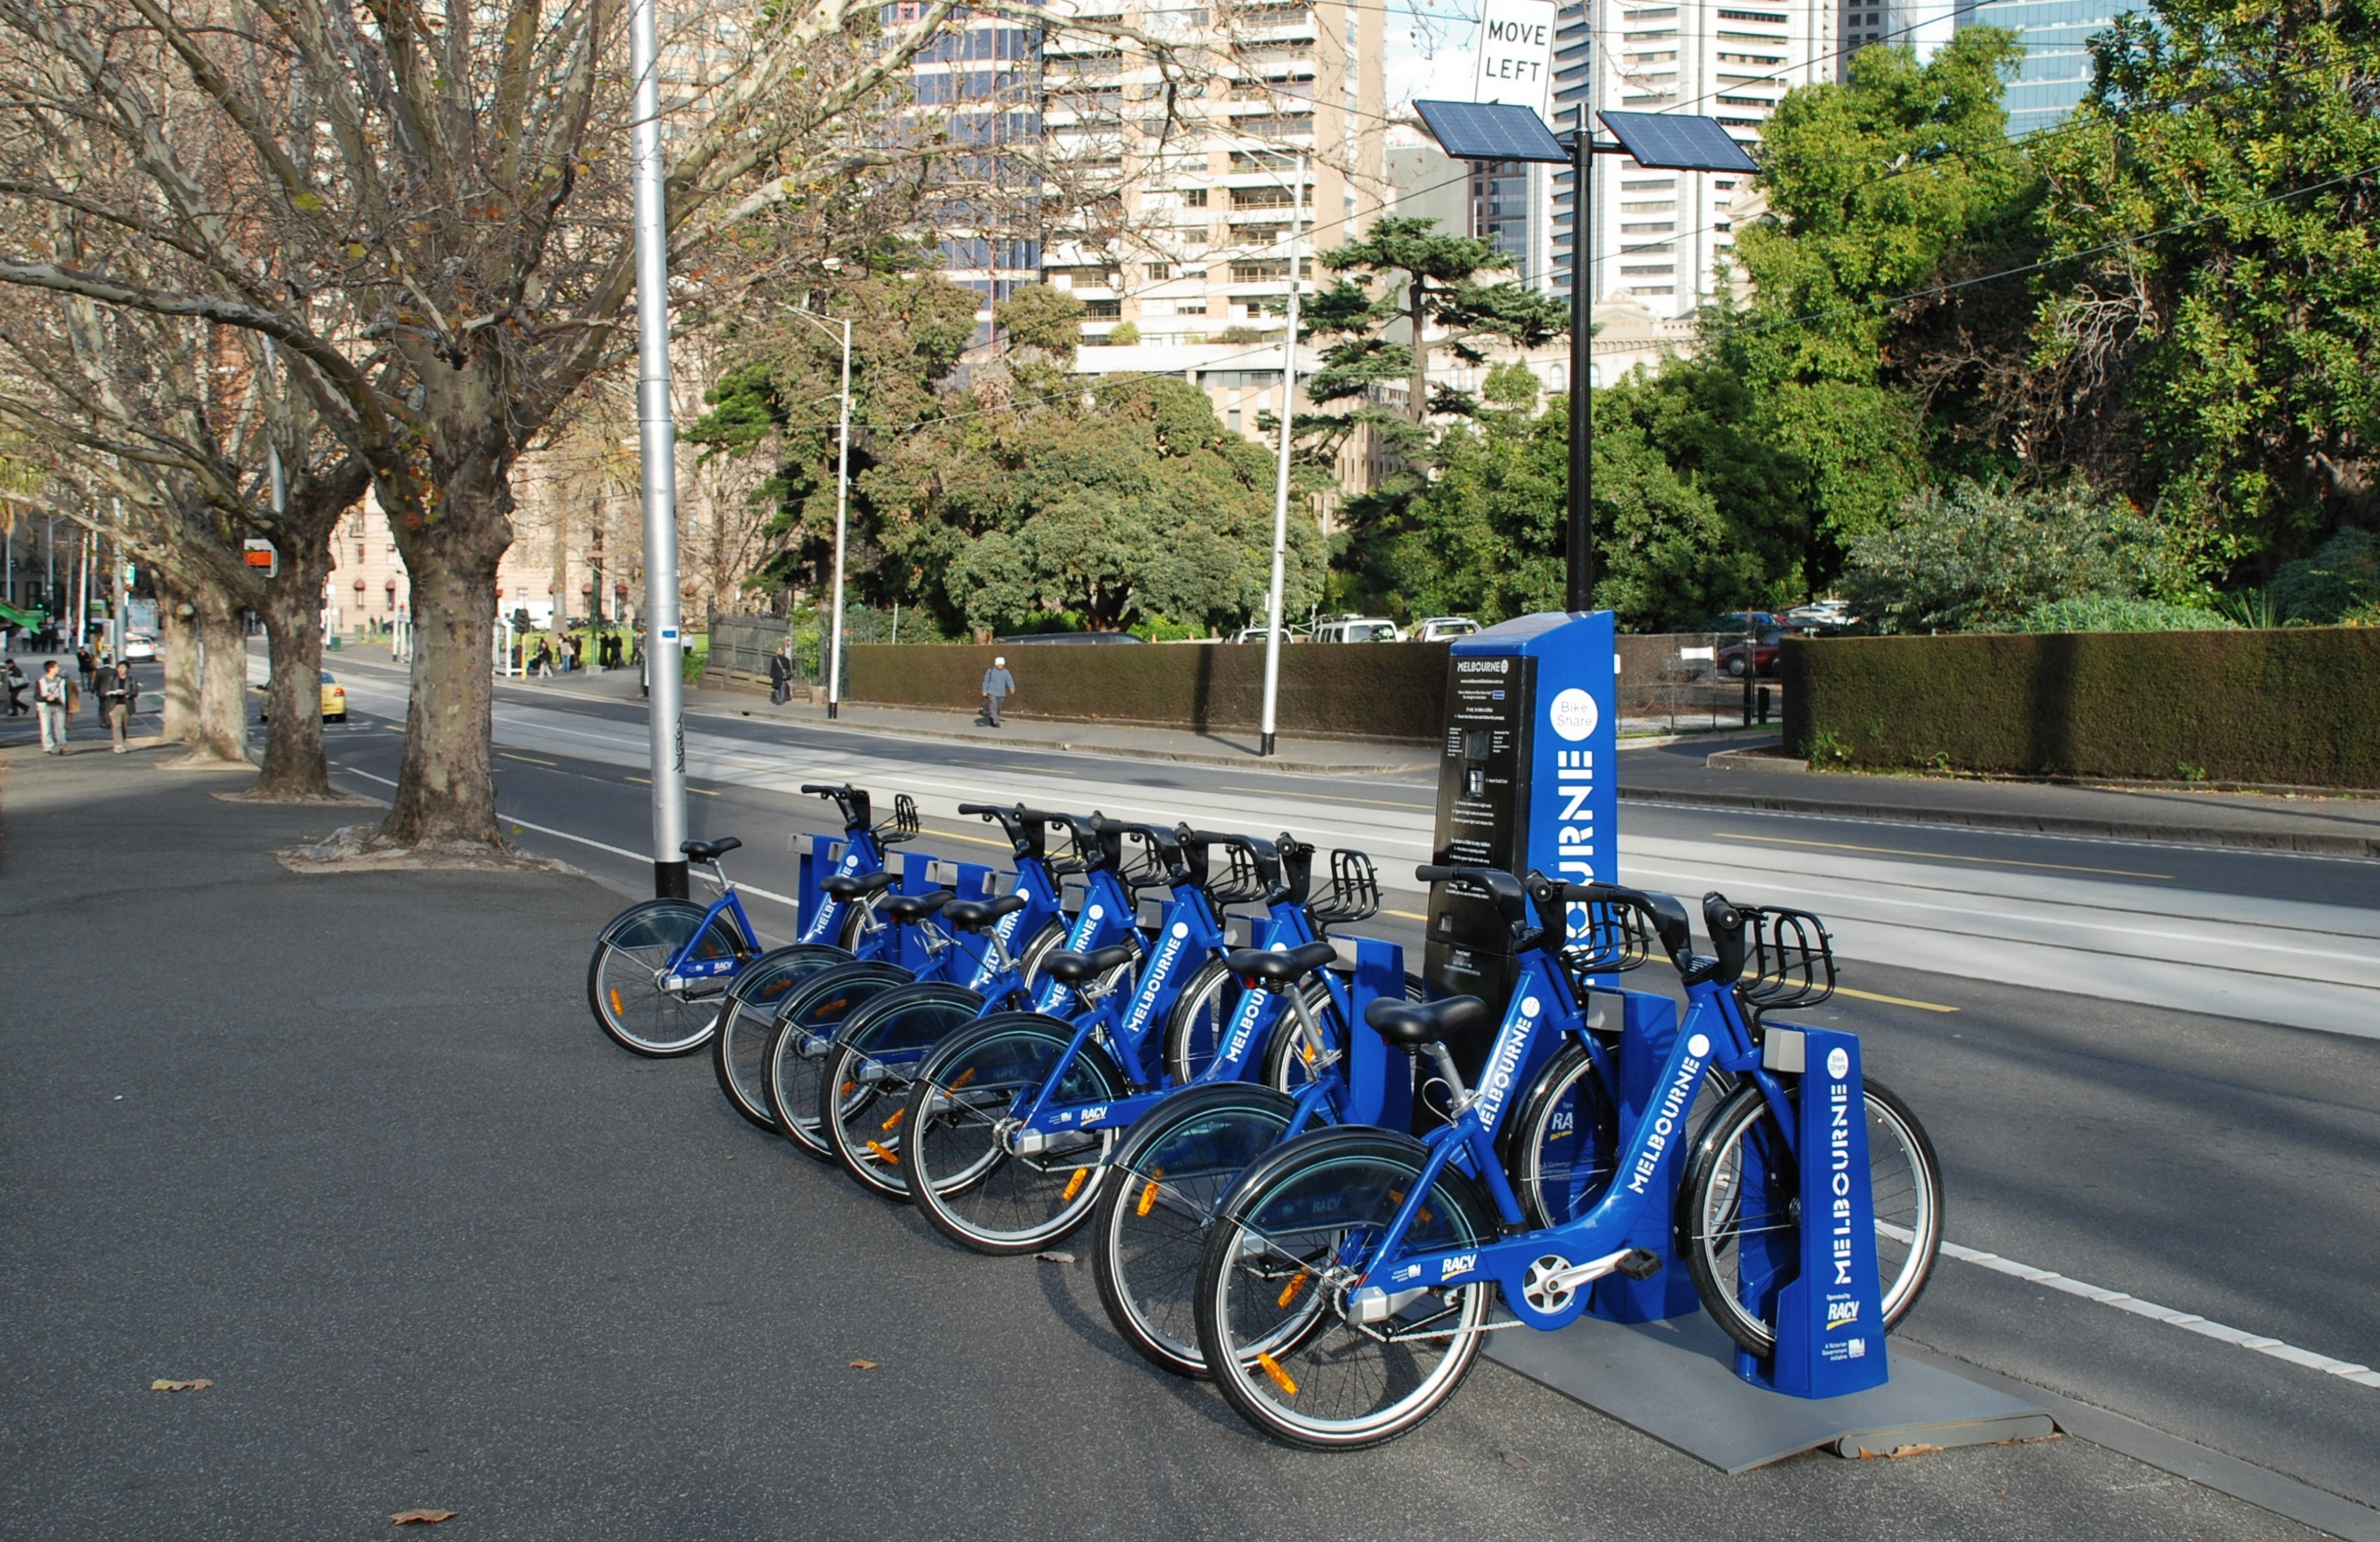 Bokes from Melbourne's Bike Share